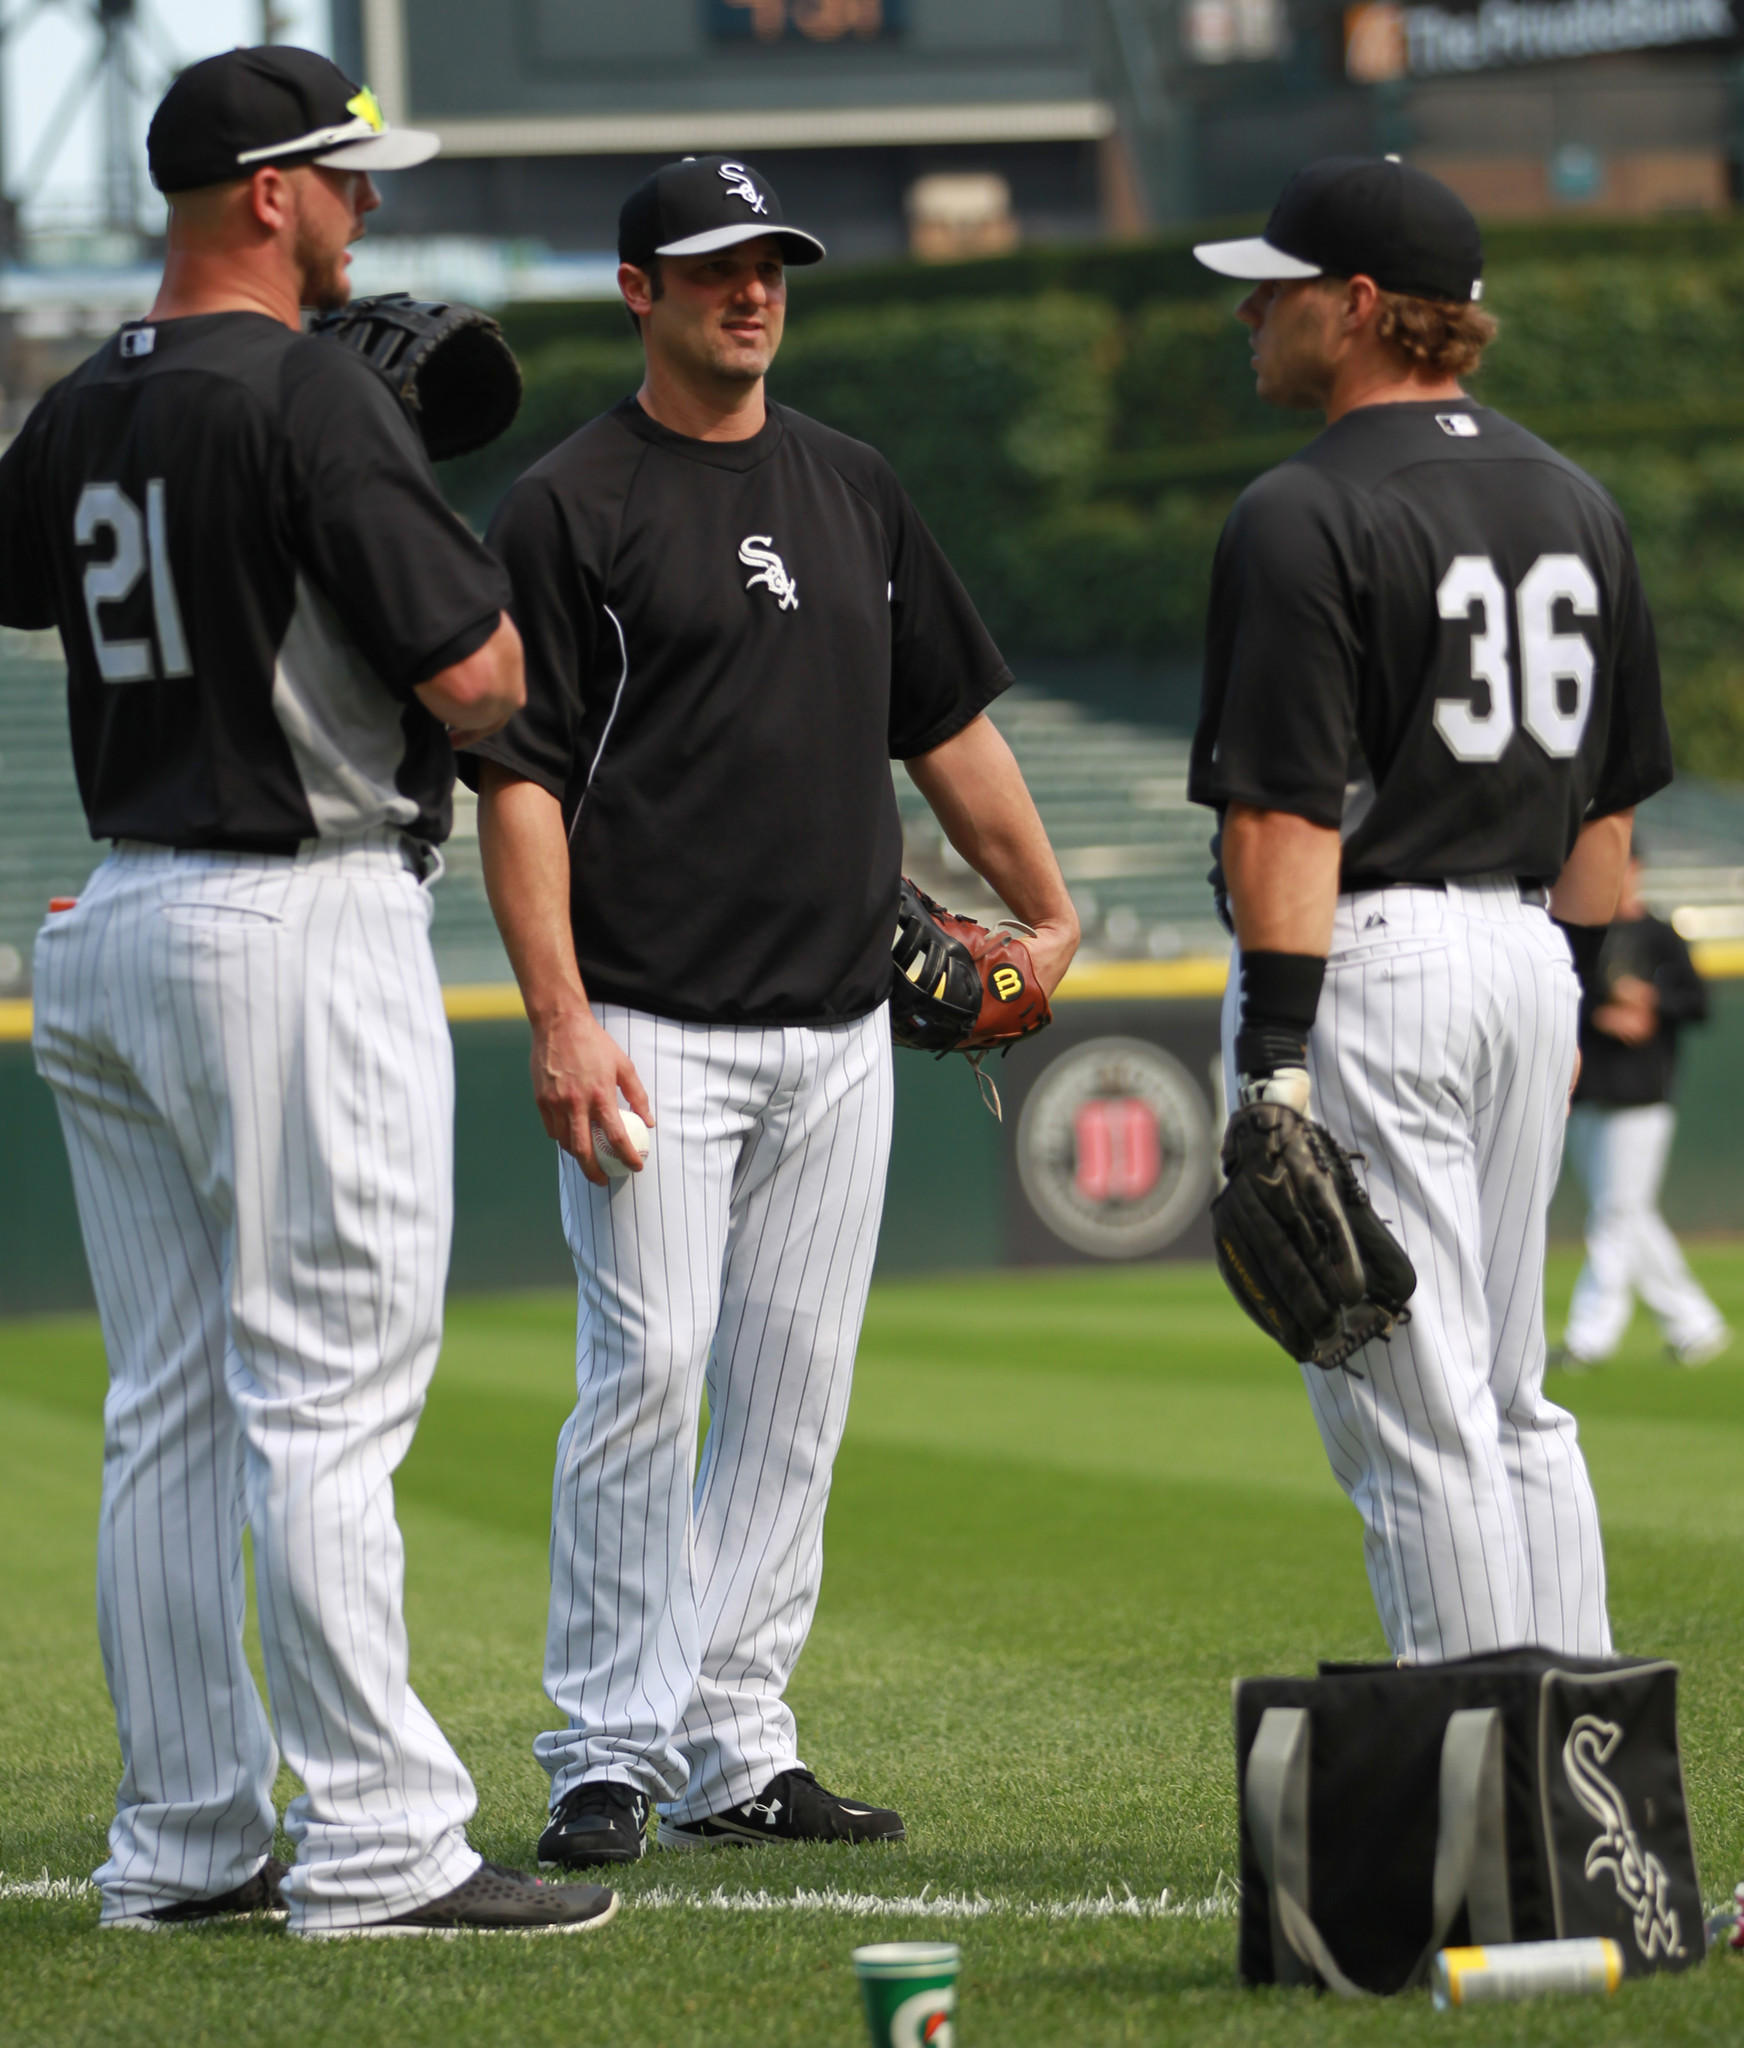 Chicago White Sox' Tyler Flowers, Paul Konerko and Josh Phegley before playing Detroit Tigers in MLB game at US Cellular Field in Chicago on Monday, July 22, 2013.